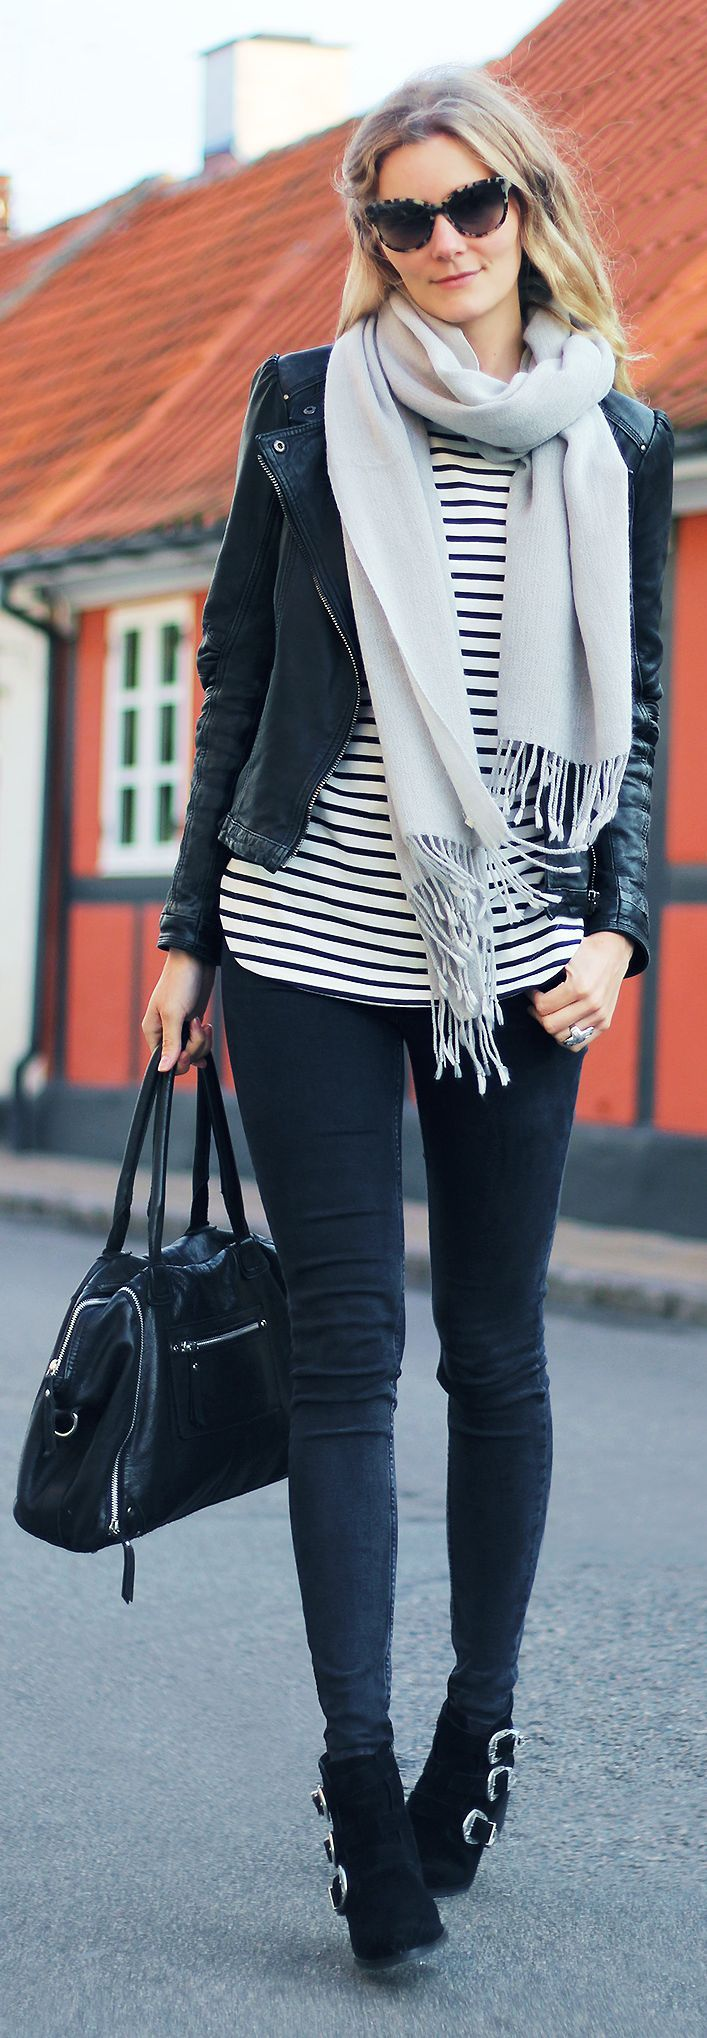 Passions For Fashion Stripes With Black Fall Inspo women fashion outfit clothing stylish apparel @roressclothes closet ideas